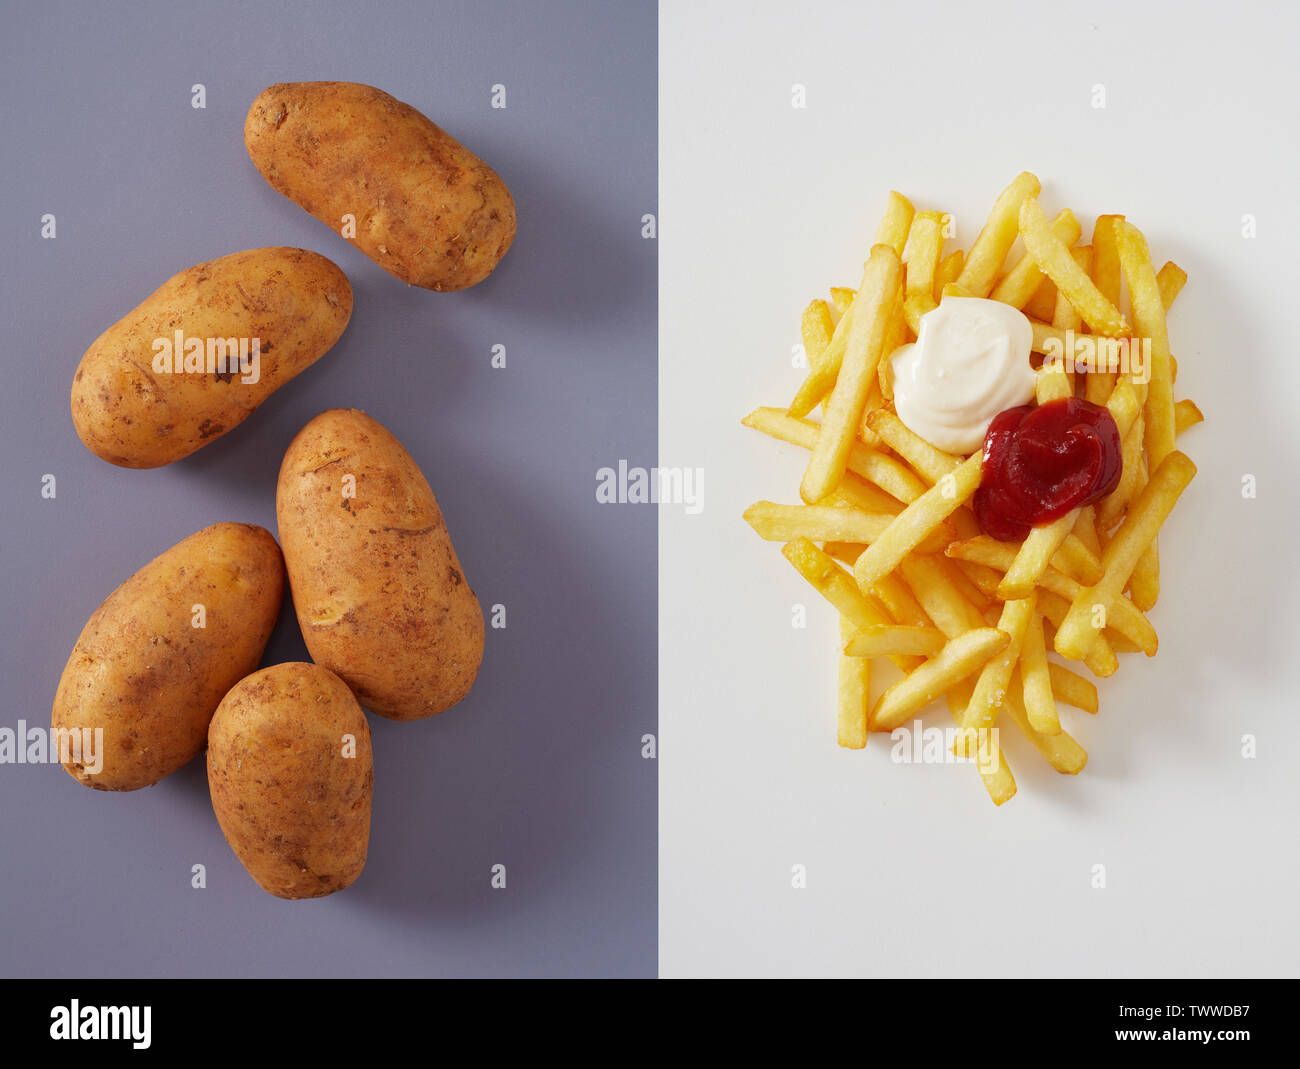 Several whole potatoes and pile of fries with ketchup on top over two tone pink and purple background - Stock Image